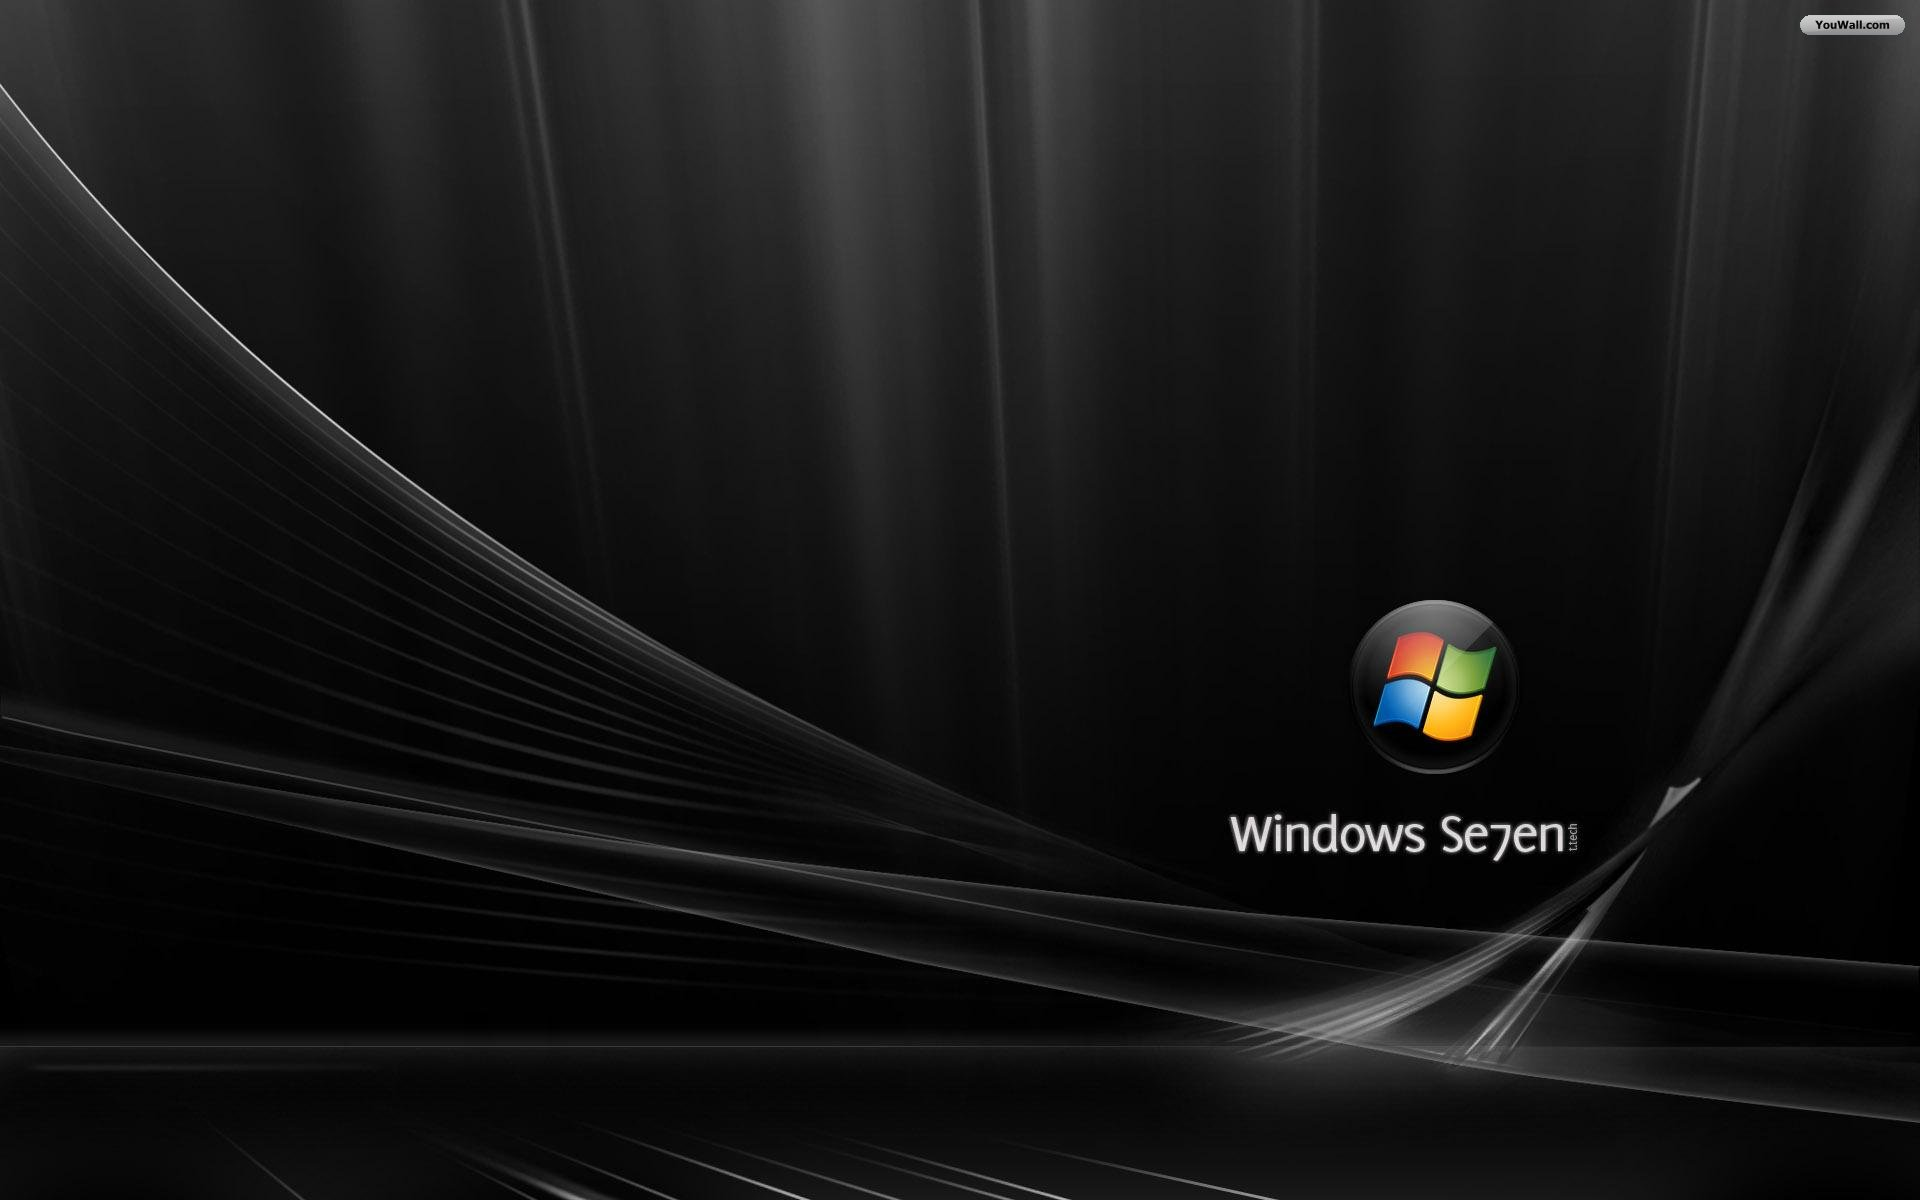 Windows Free Wallpaper